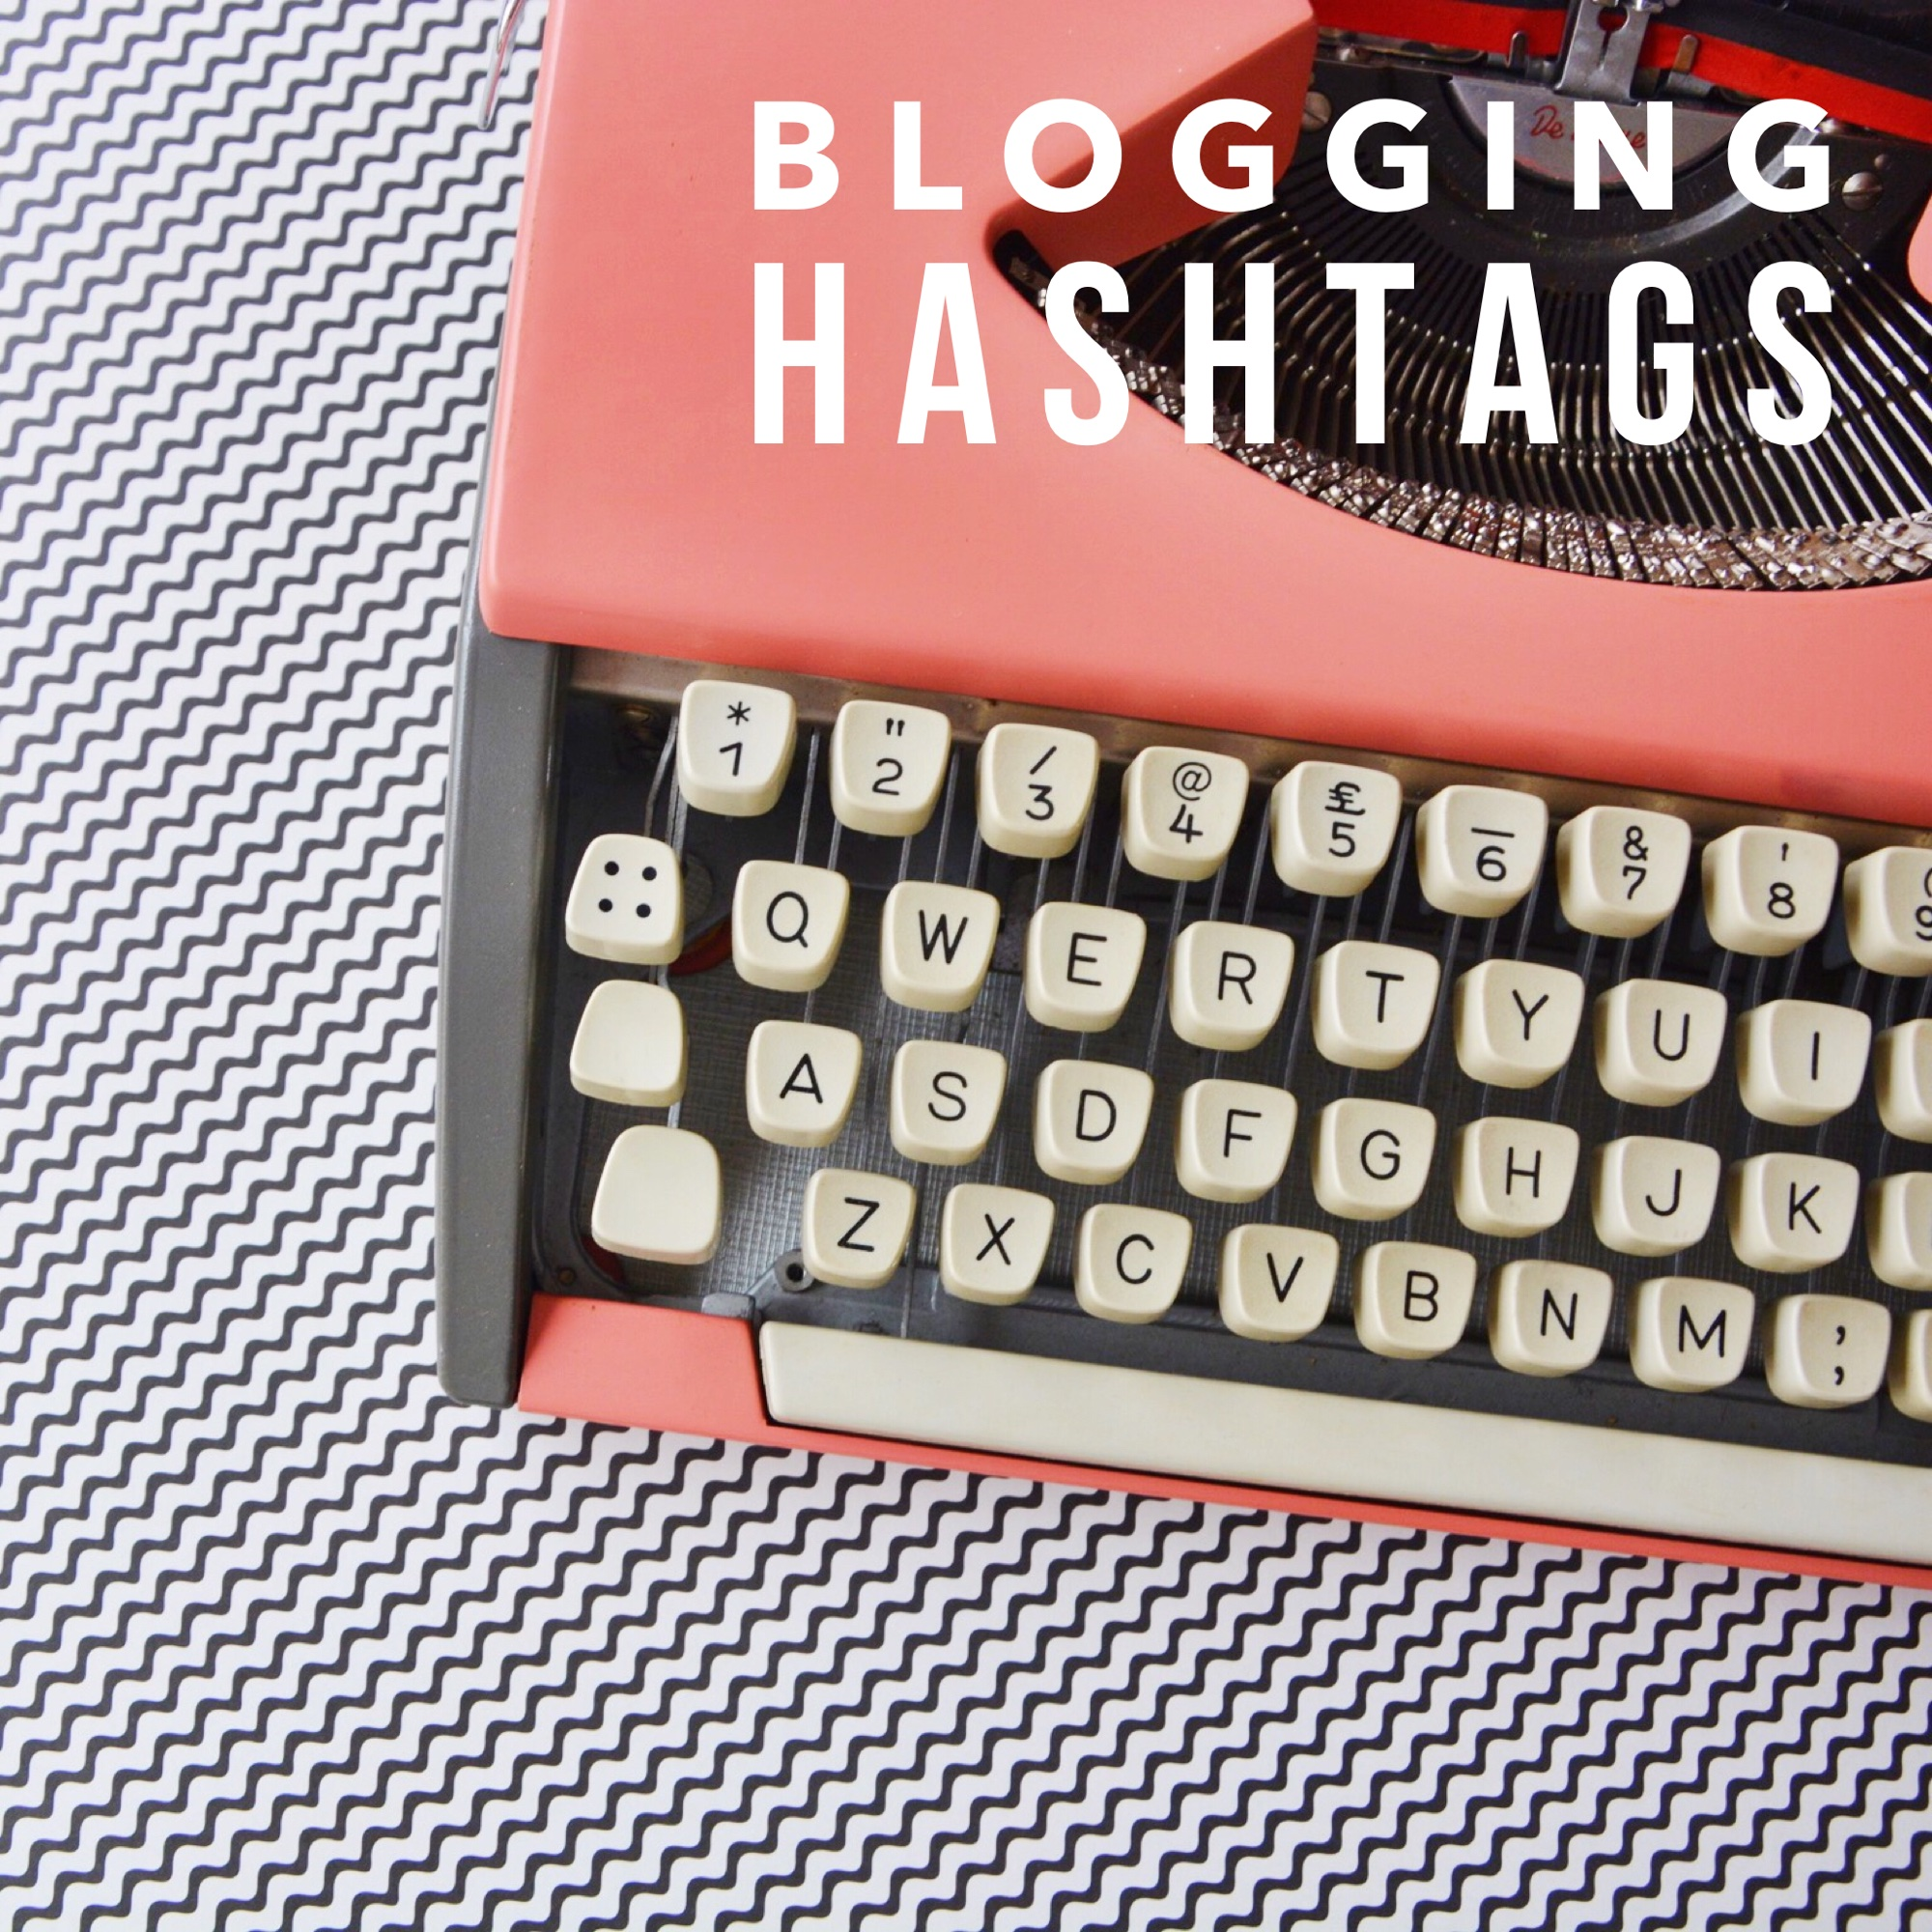 Blogging hashtags | Hello! Hooray!